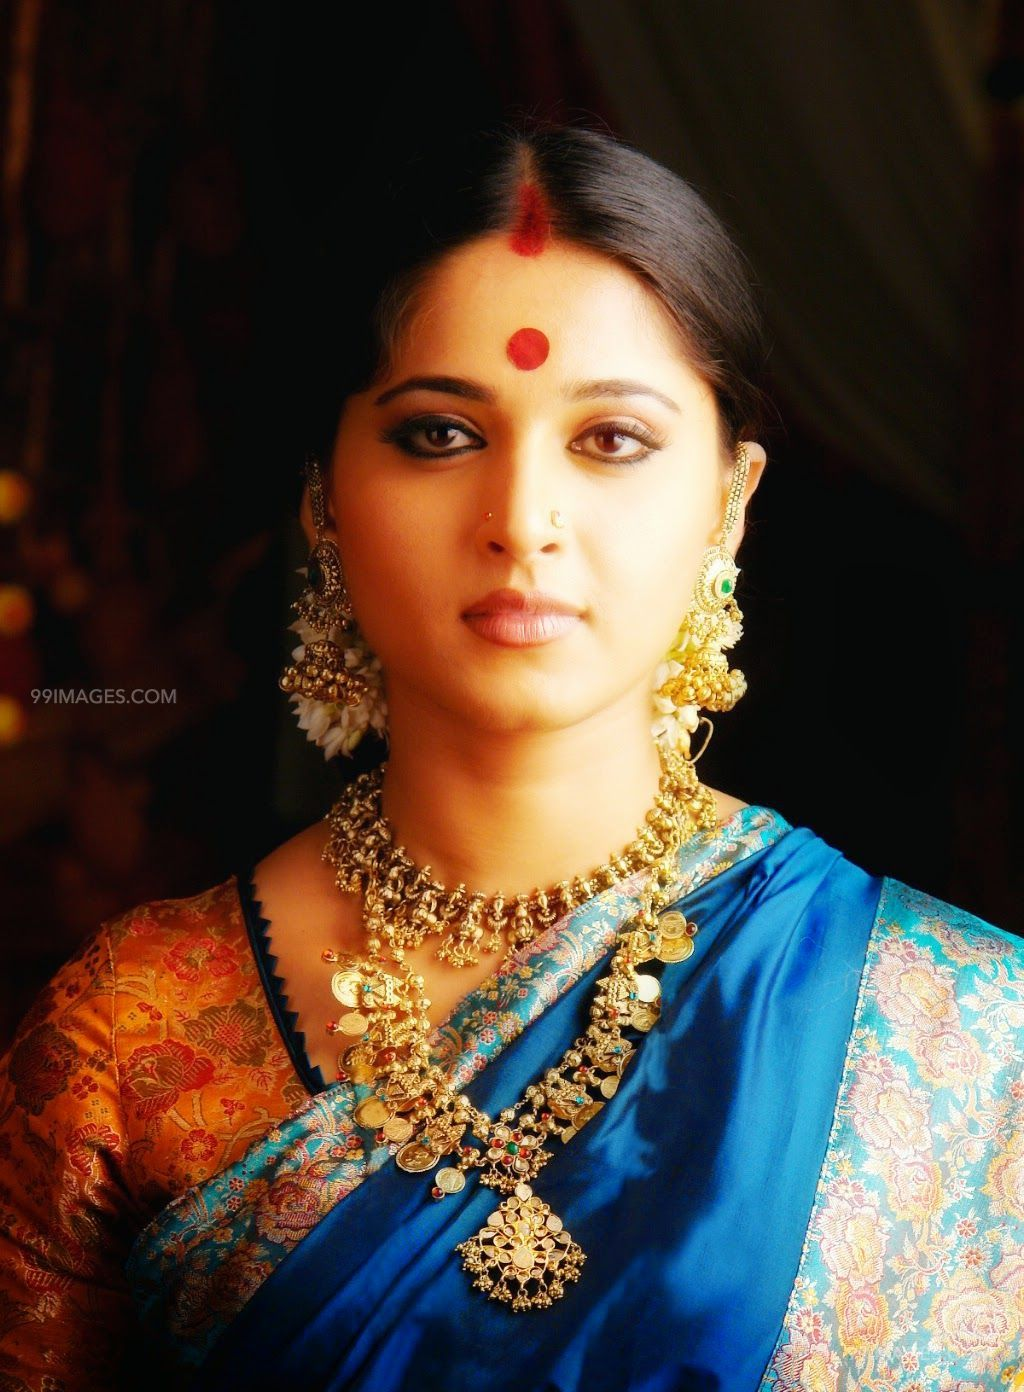 Anushka Shetty Beautiful HD Photoshoot Stills (1080p) (45858) - Anushka Shetty